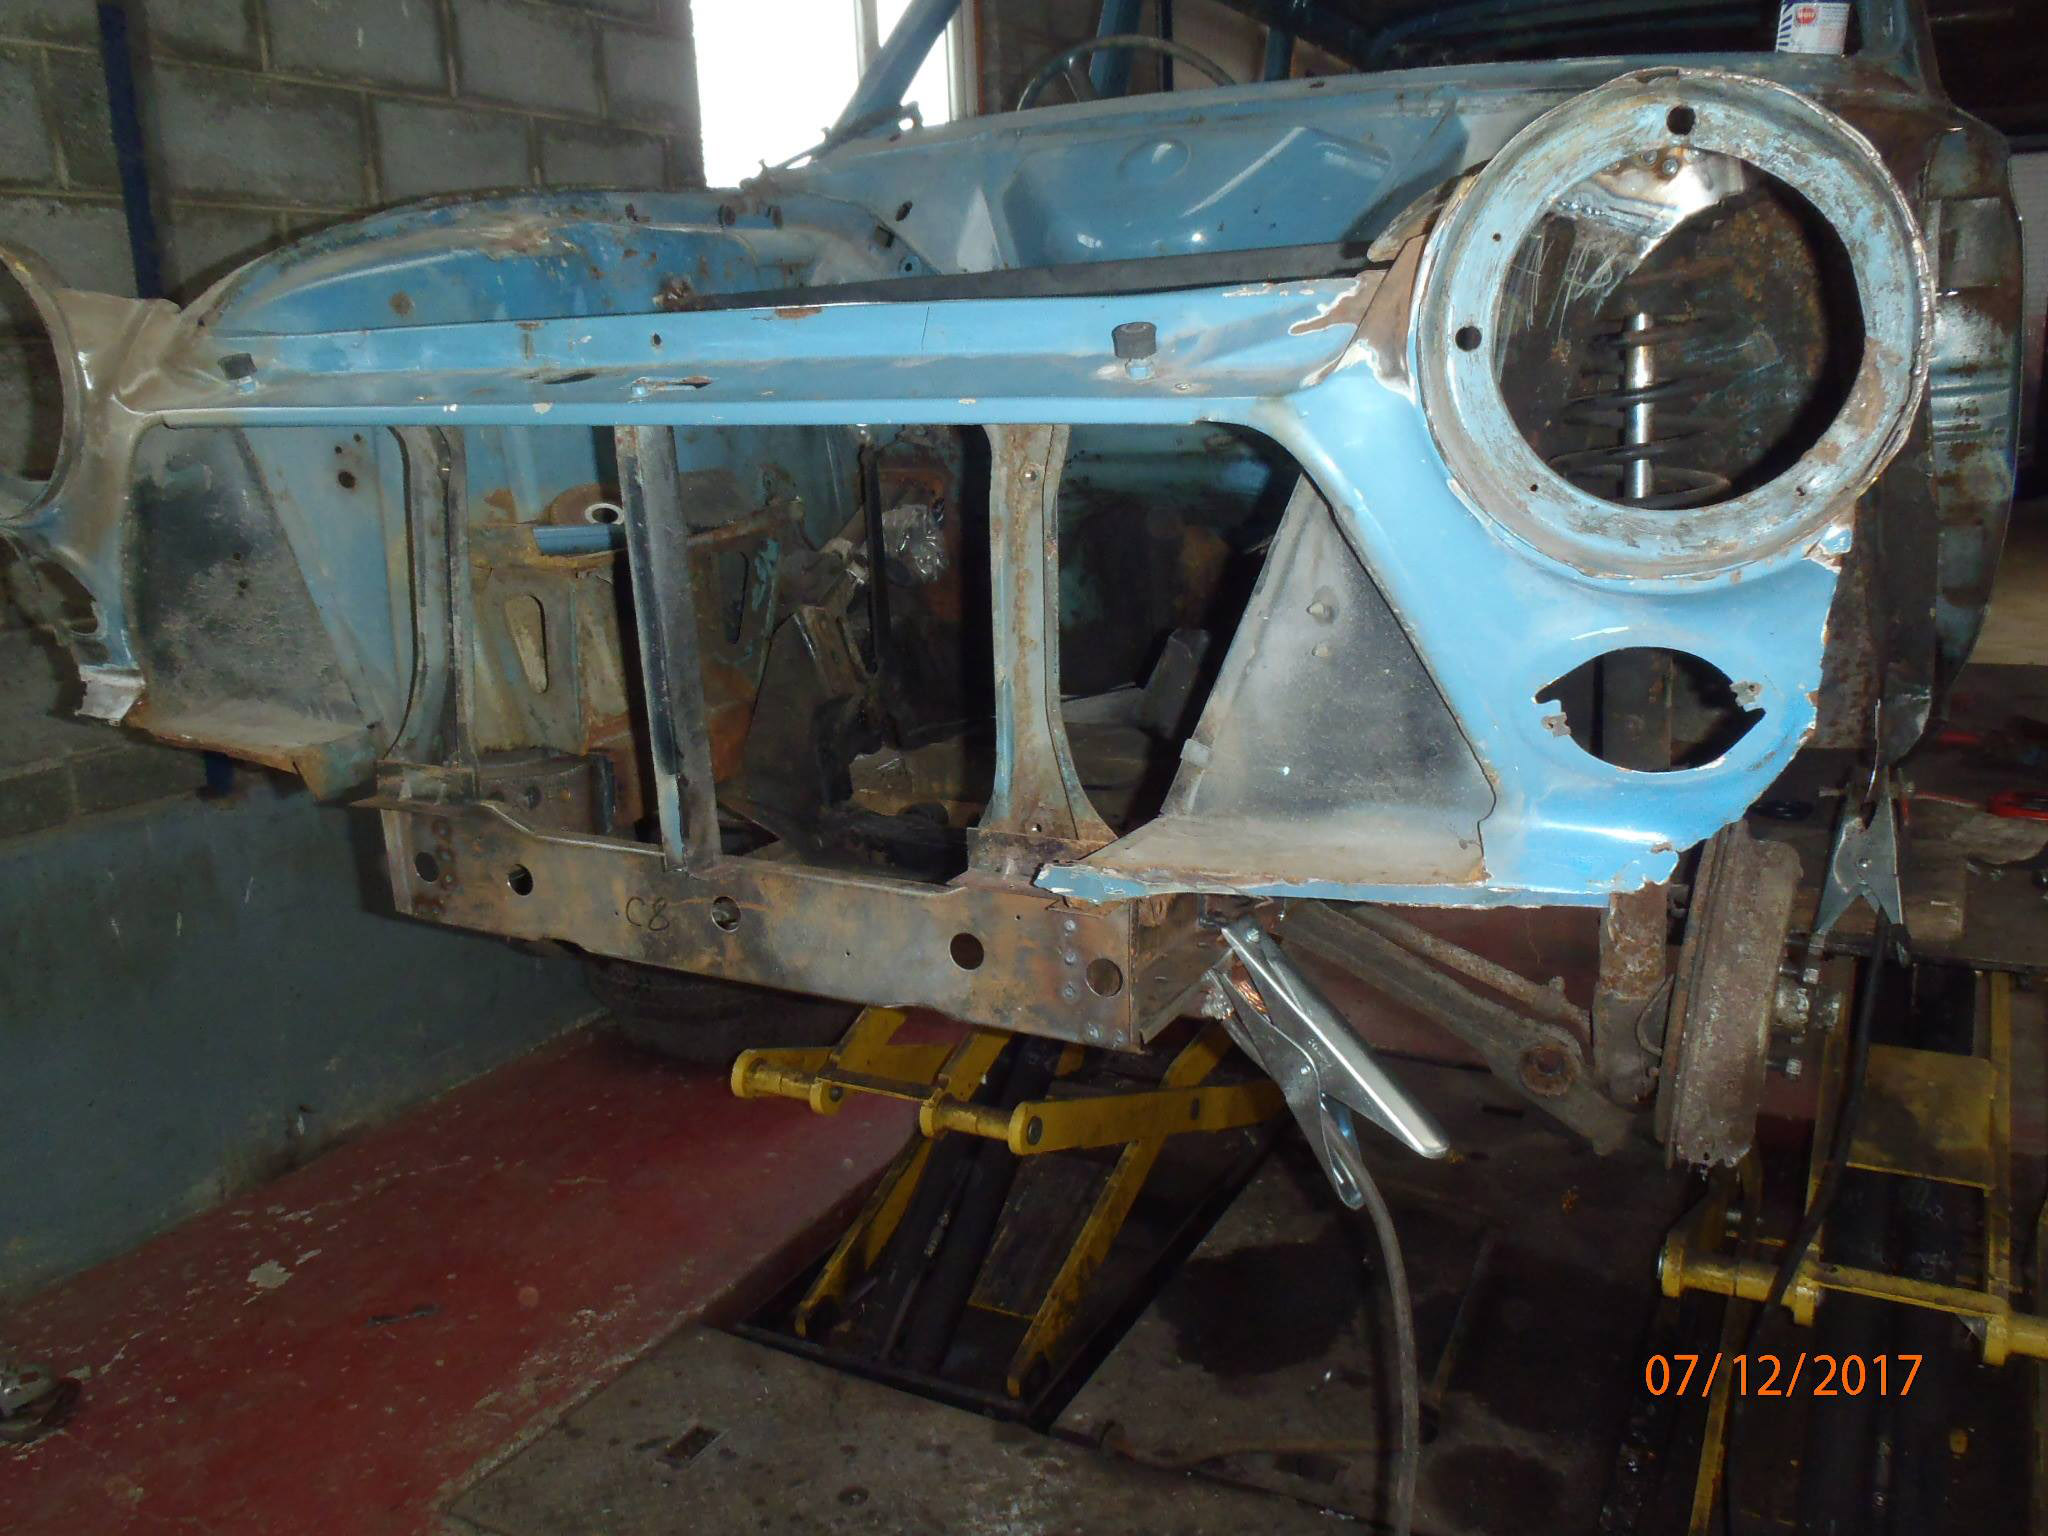 Ford Cortina Mk1 Car Restoration - Misc28